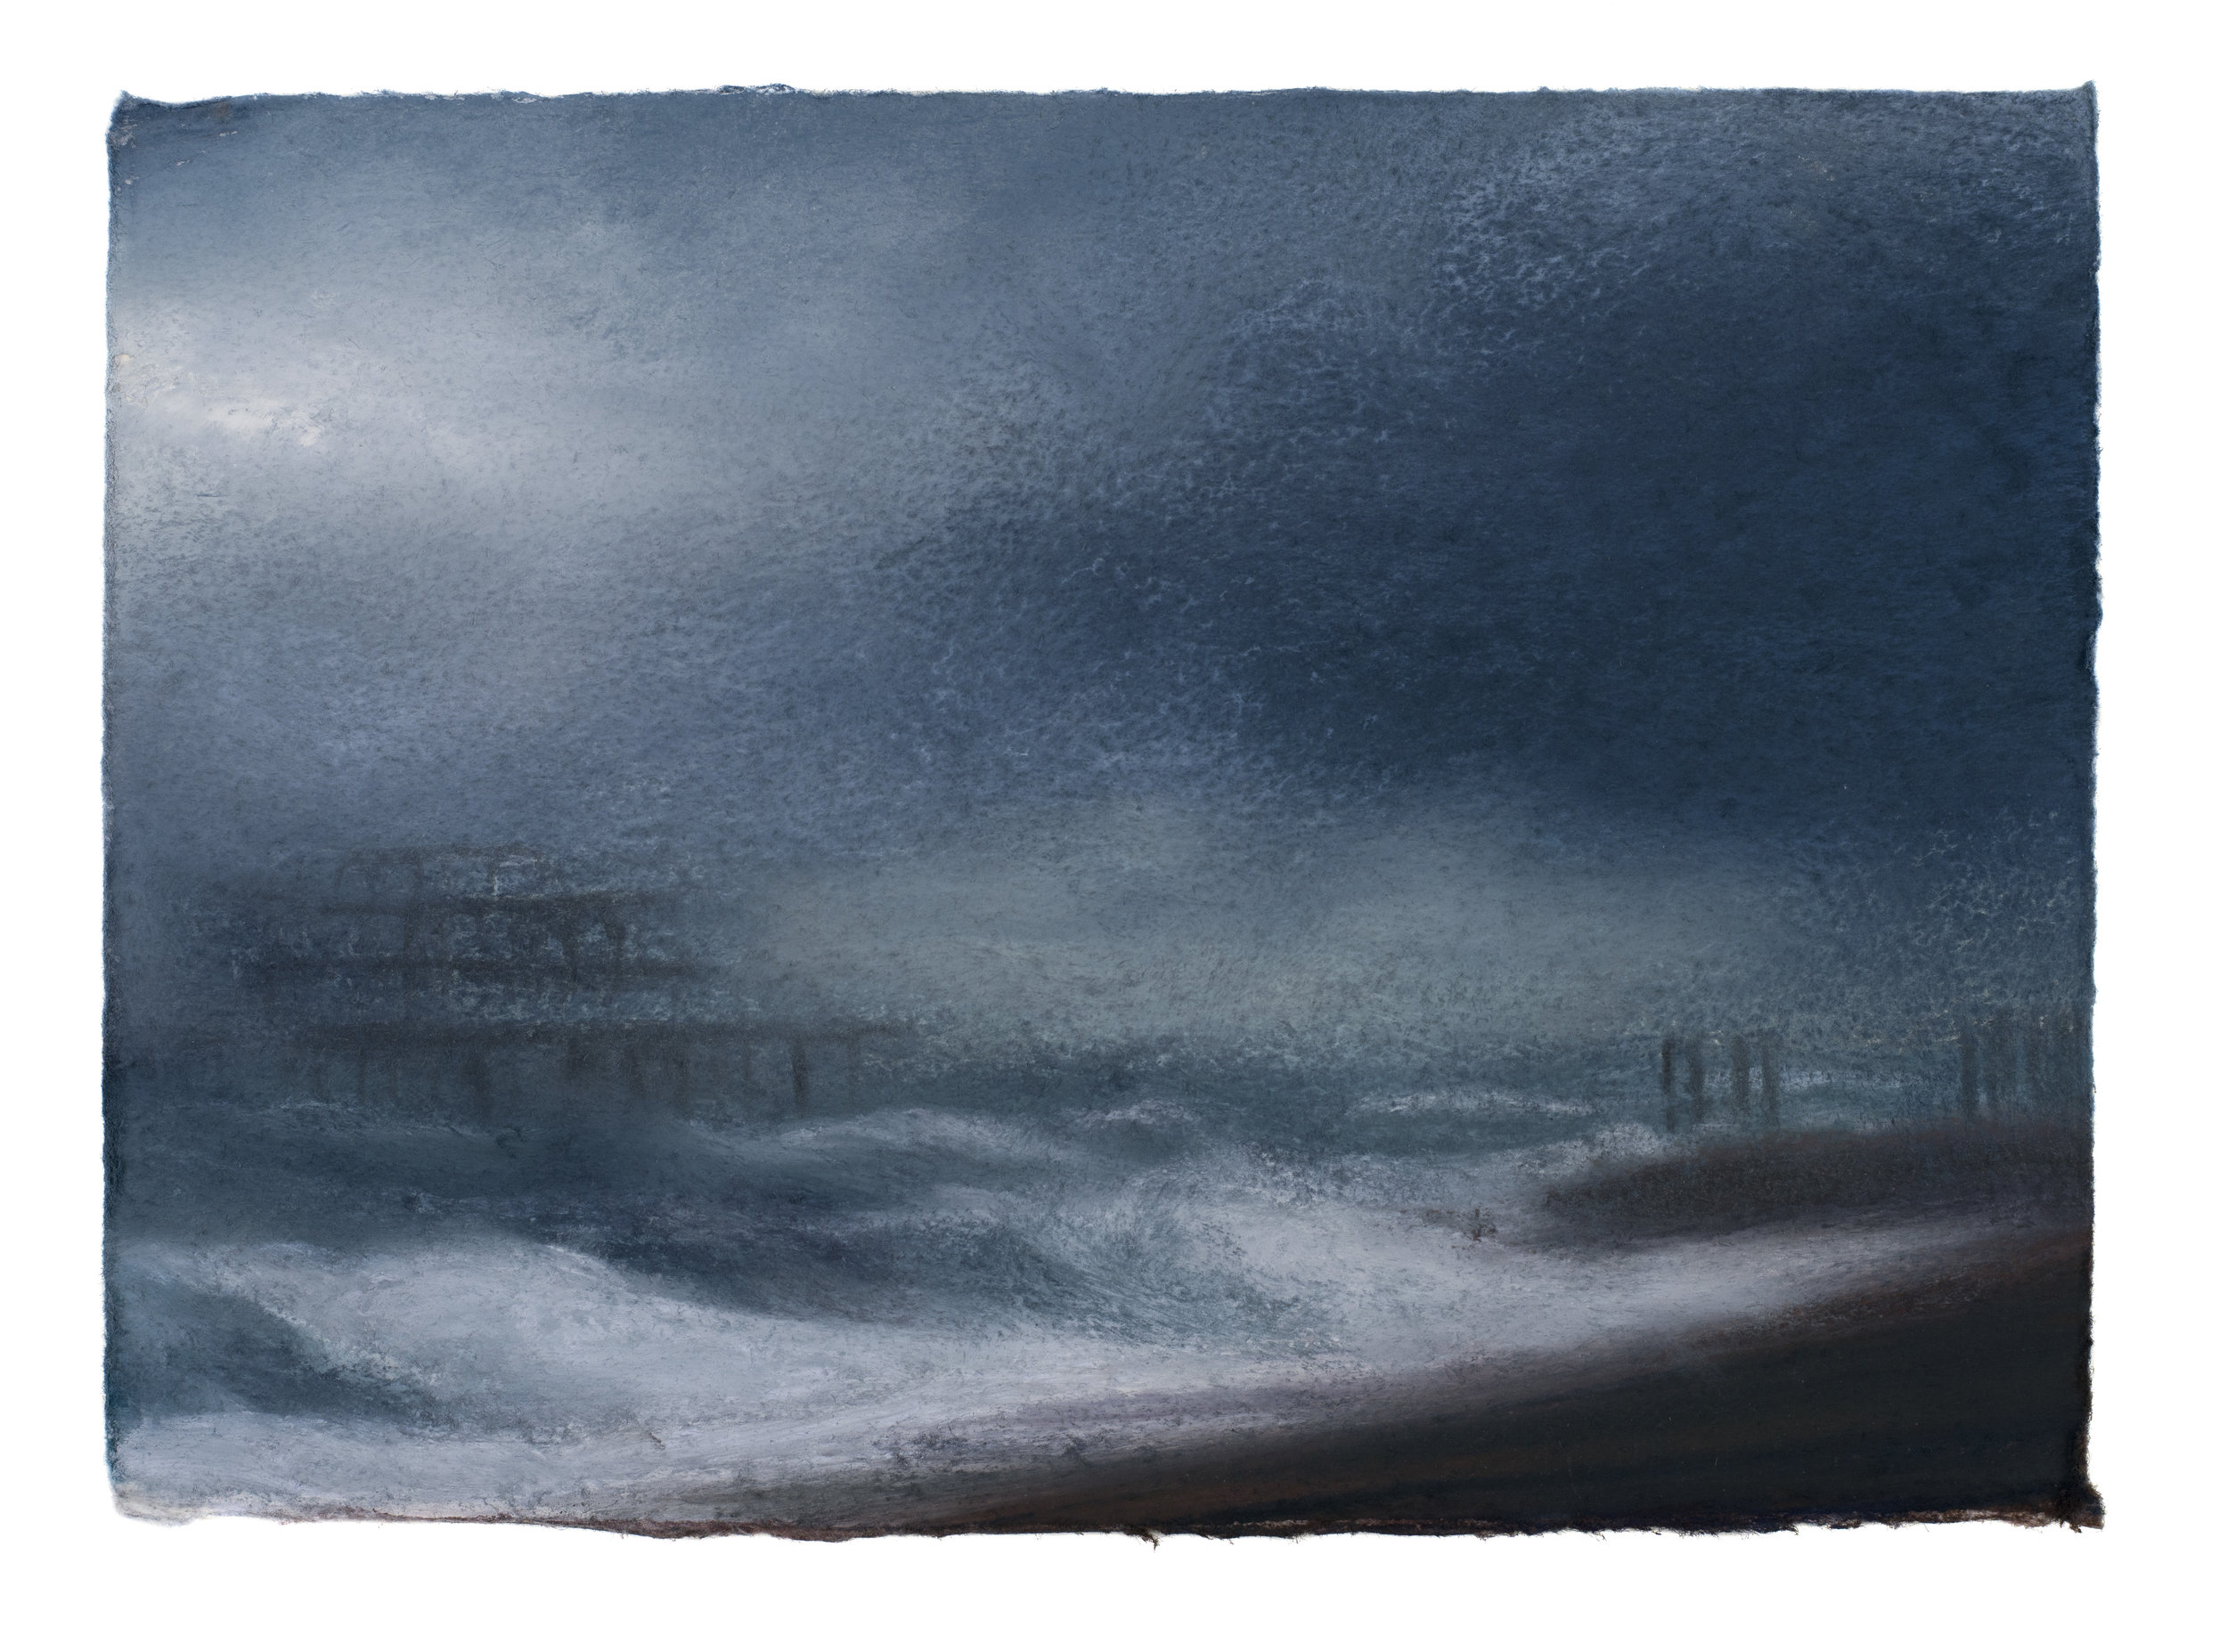 Artist: Matthew Draper  Title: Two Piers, A Study of Brighton Seafront  Size: 15 x 21 cm  Medium: Pastel on paper  Price: £525